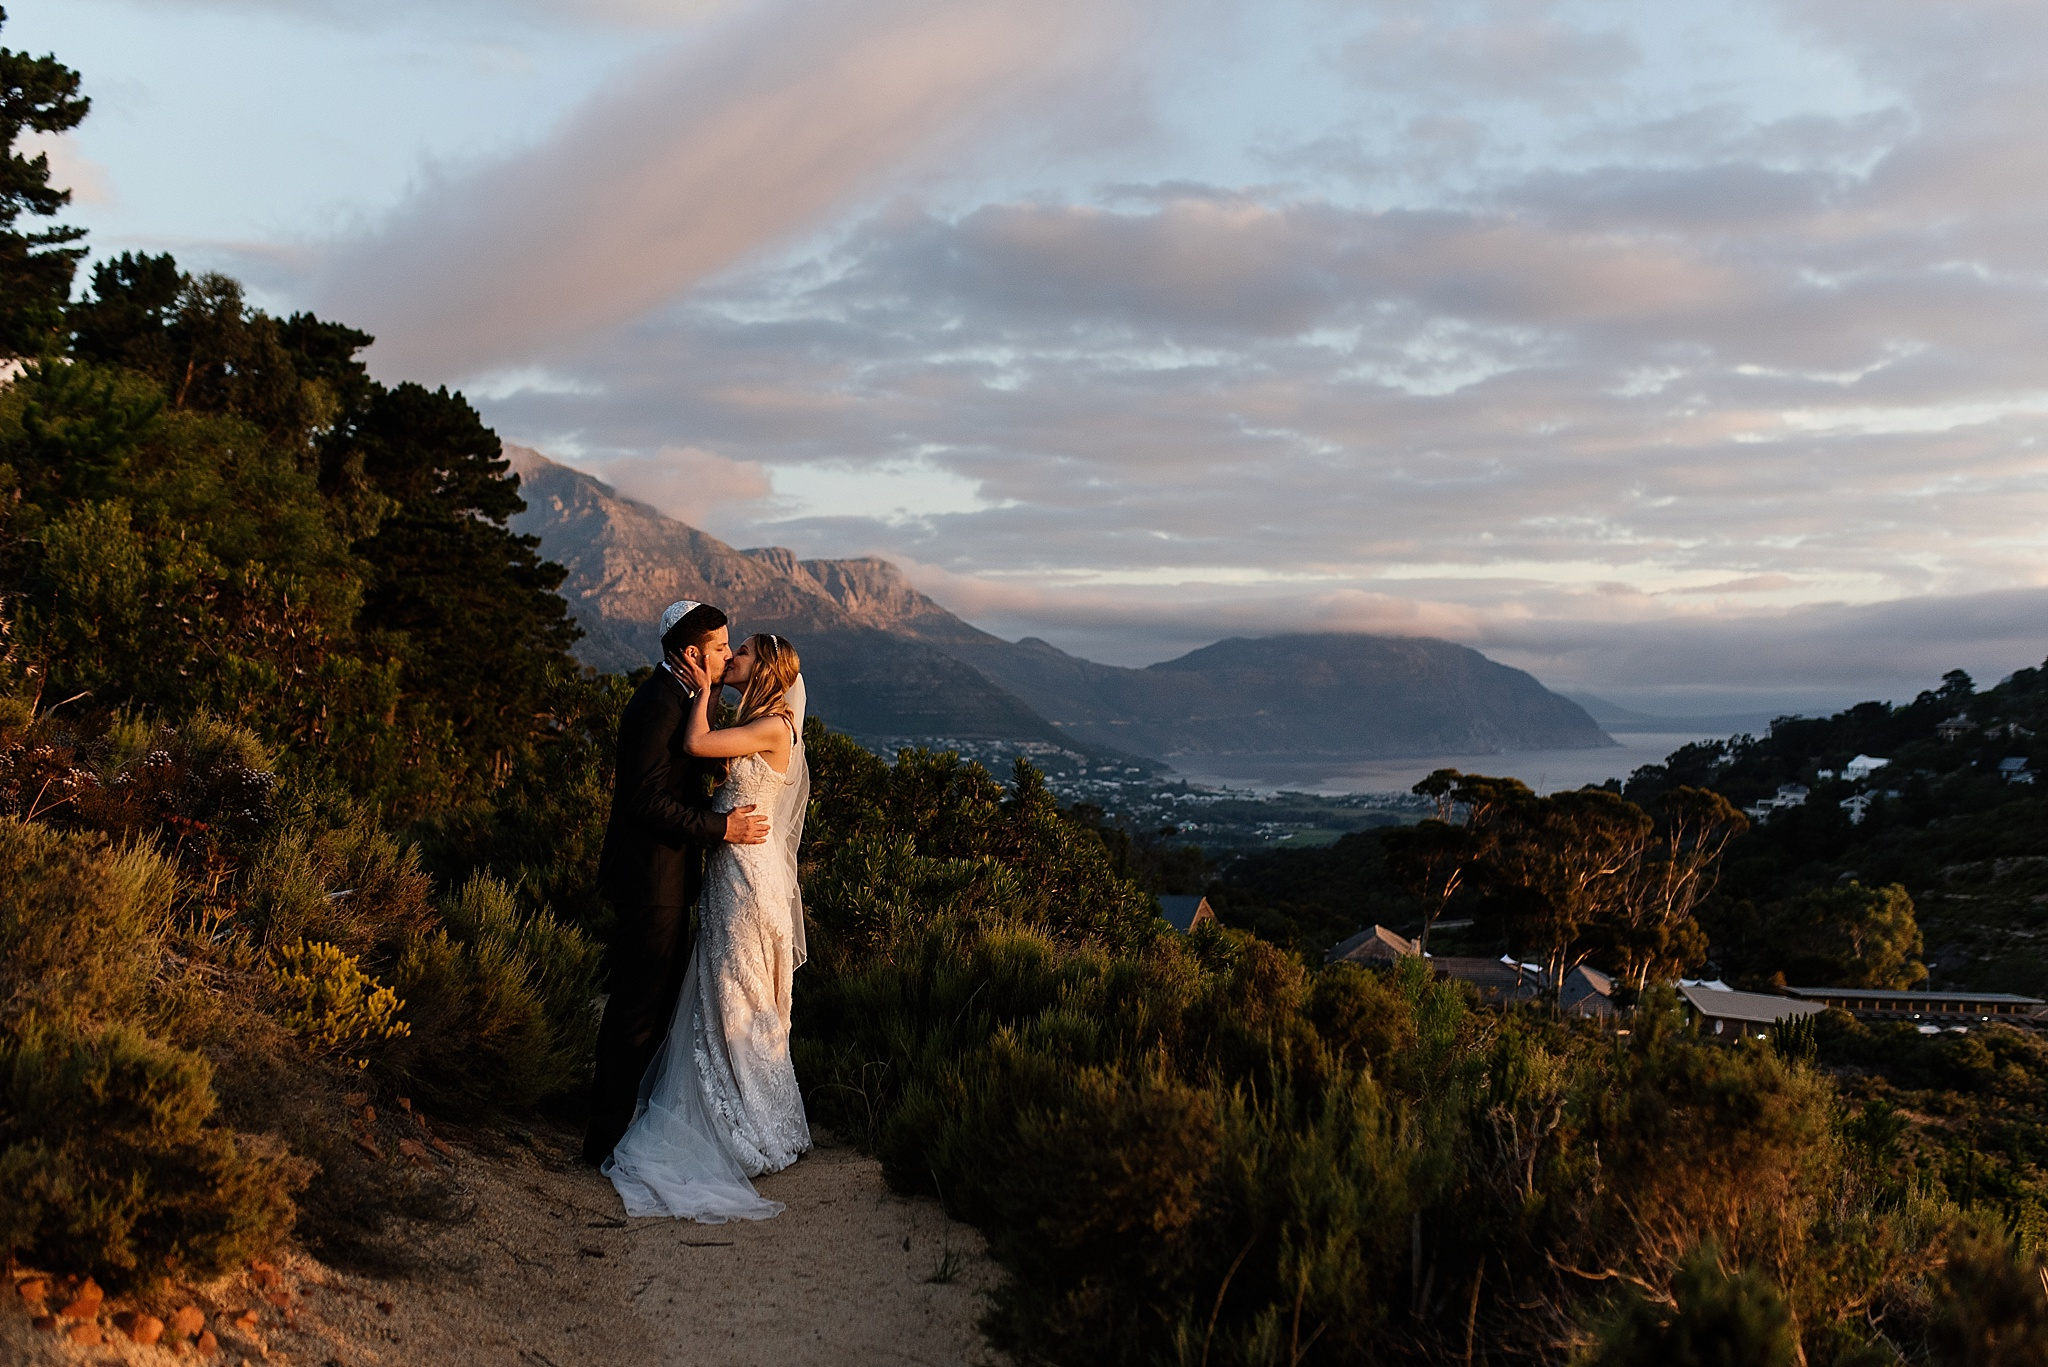 Cape Town Wedding Photographer Darren Bester - SuikerBossie - Stephen and Mikaela_0001.jpg